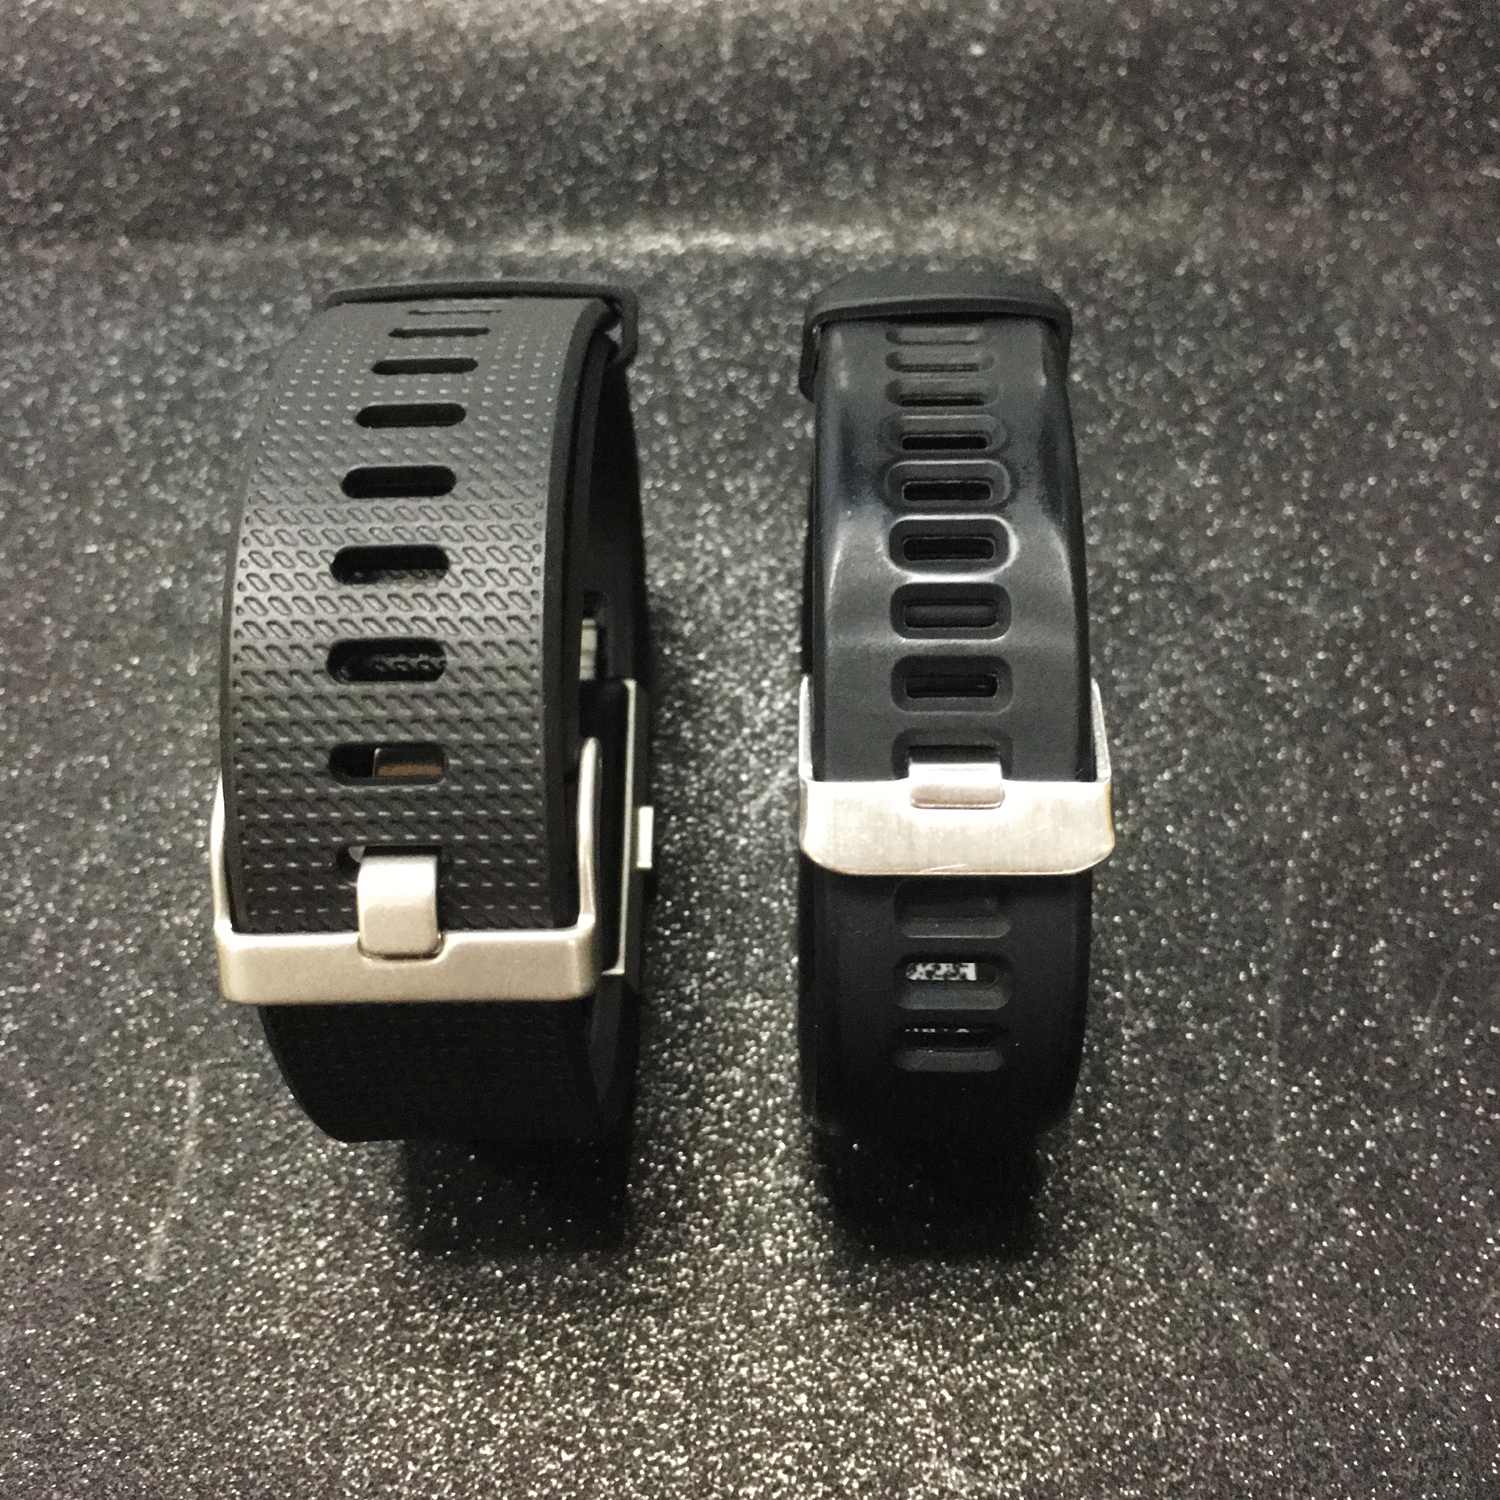 Fitbit Charge 2 vs NO. 1 F1 Smartband